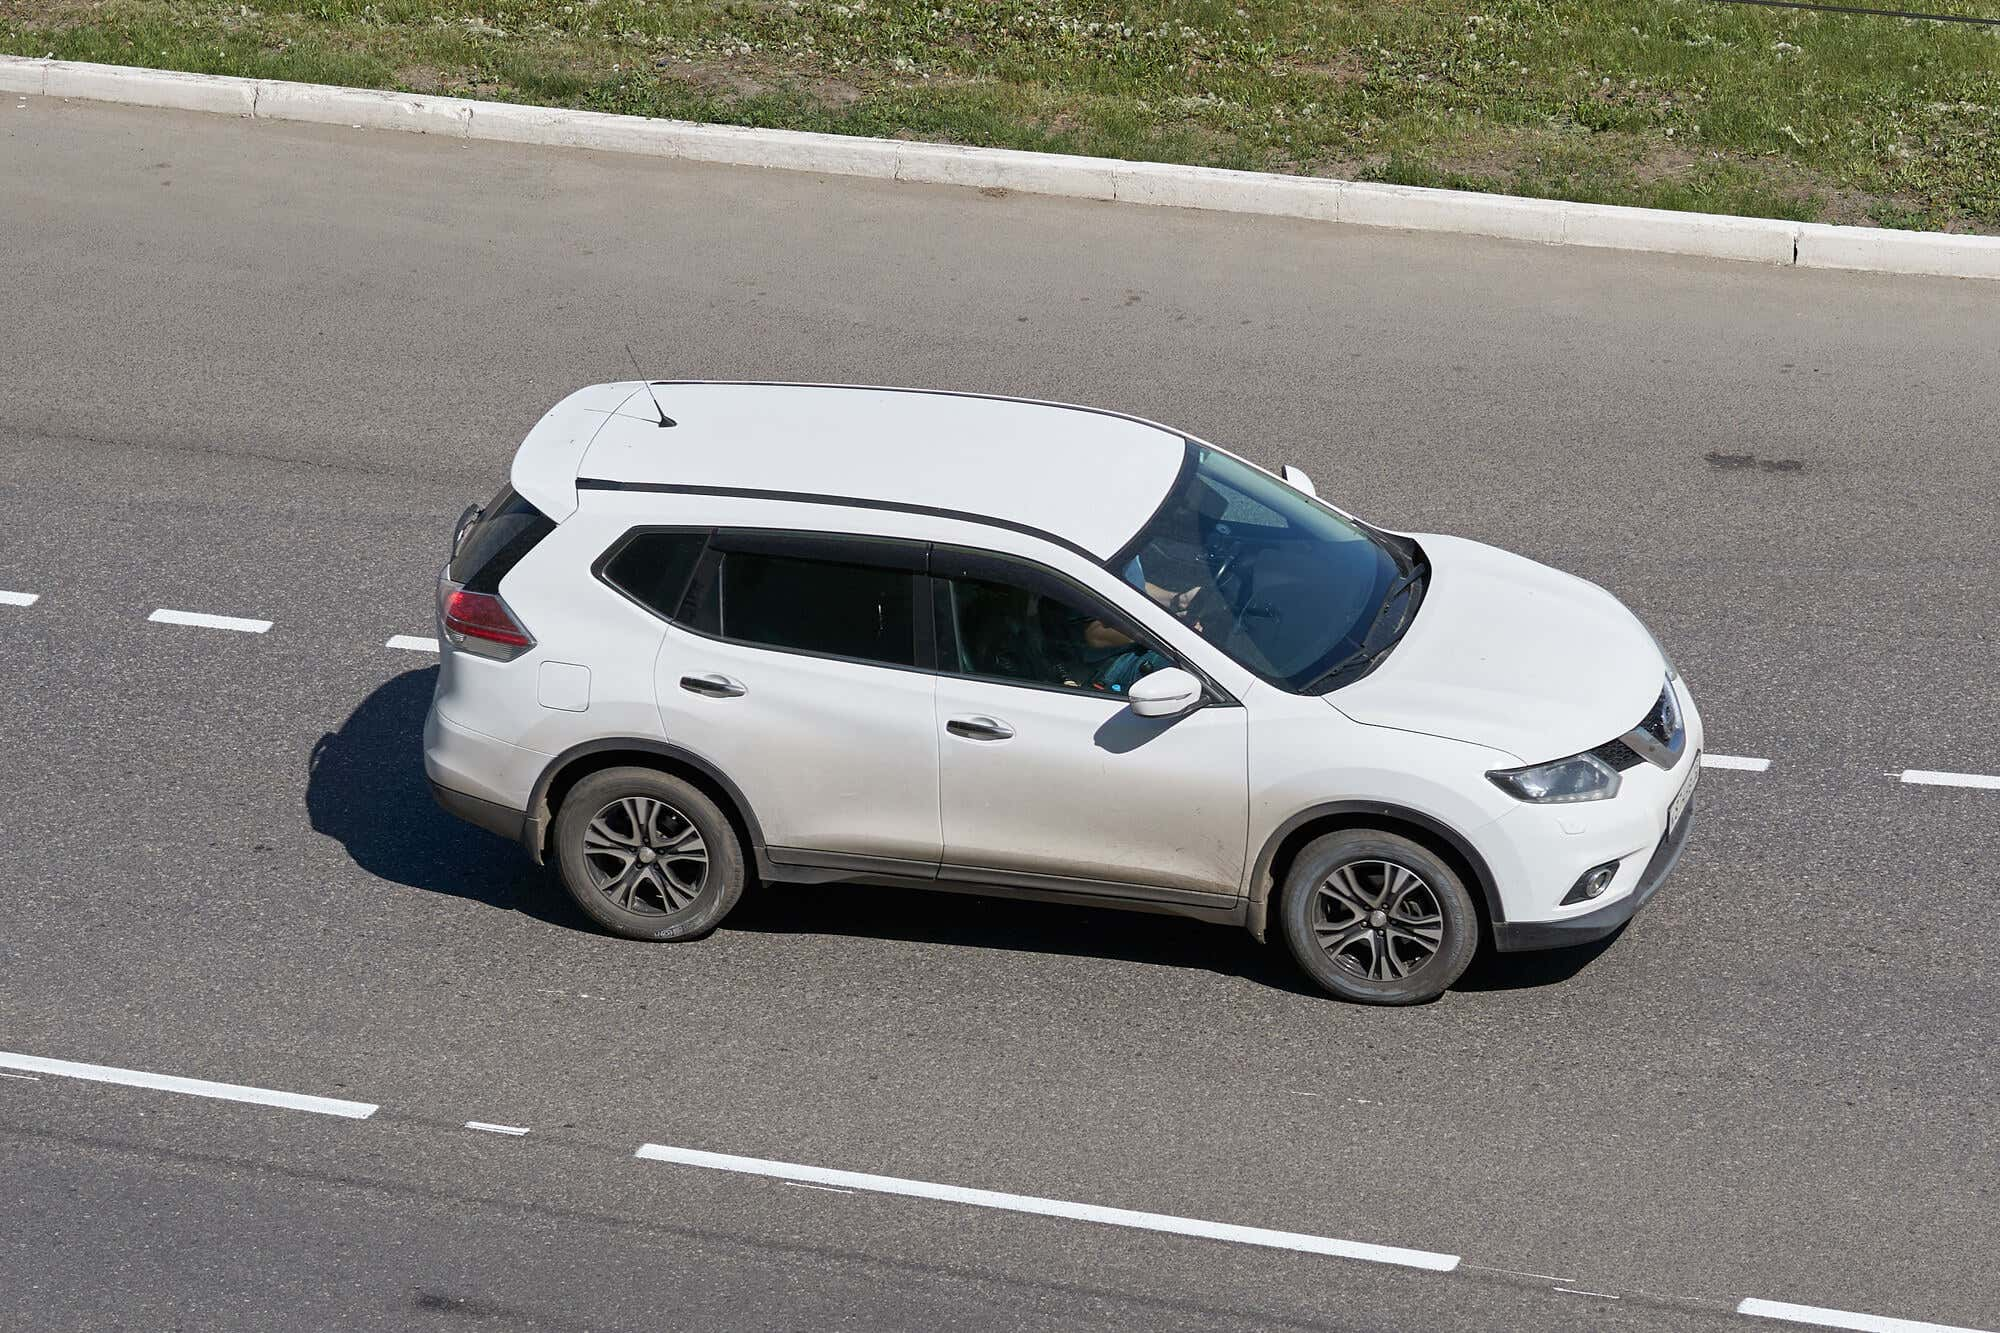 White Nissan Rogue on the street